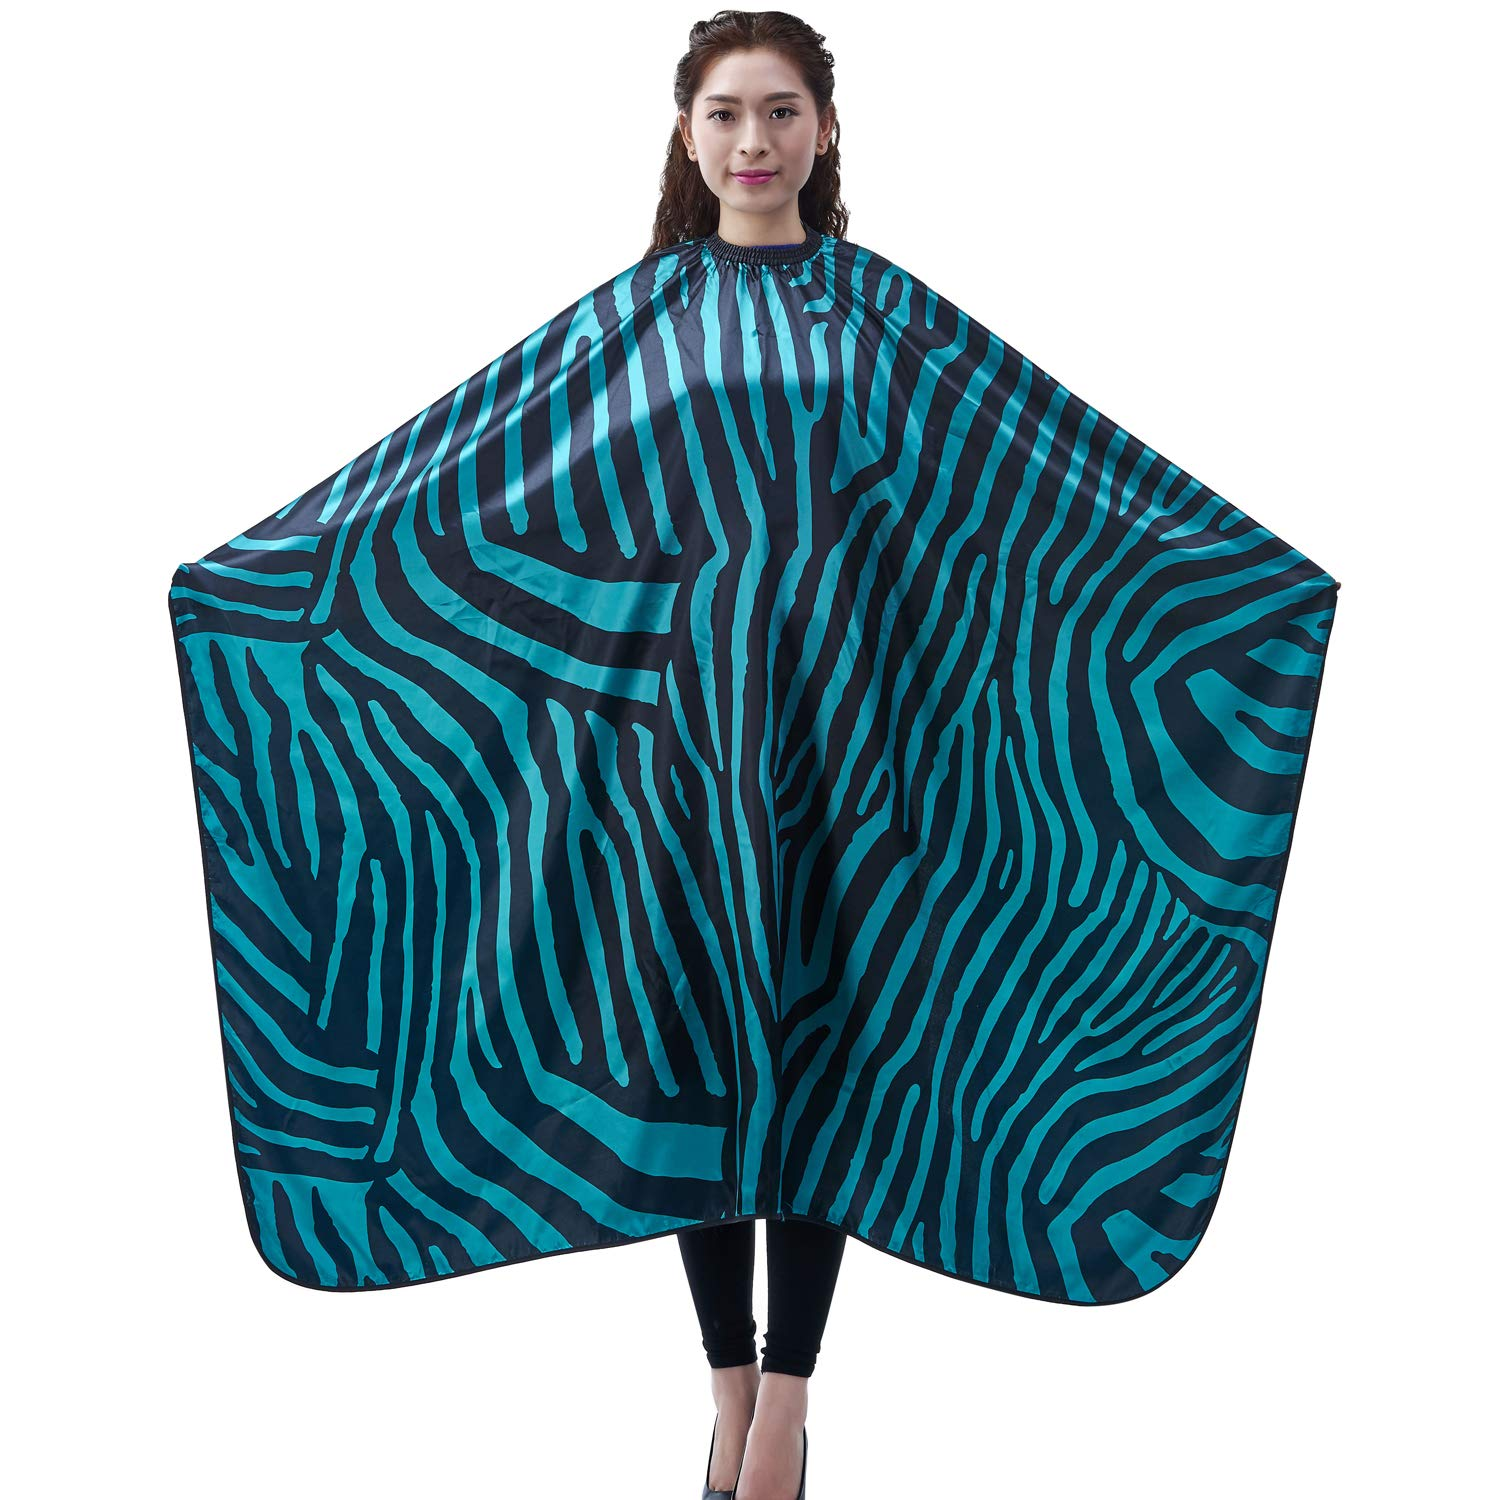 Salon Professional Hair Styling Cape, Colorfulife Adult Hair Cutting Coloring Styling Waterproof Cape Satin Hairdresser Wai Cloth Barber Gown Home Camps & Hairdressing Wrap Zebra Pattern Capes K007 (Green) by Colorfulife anglovesmile